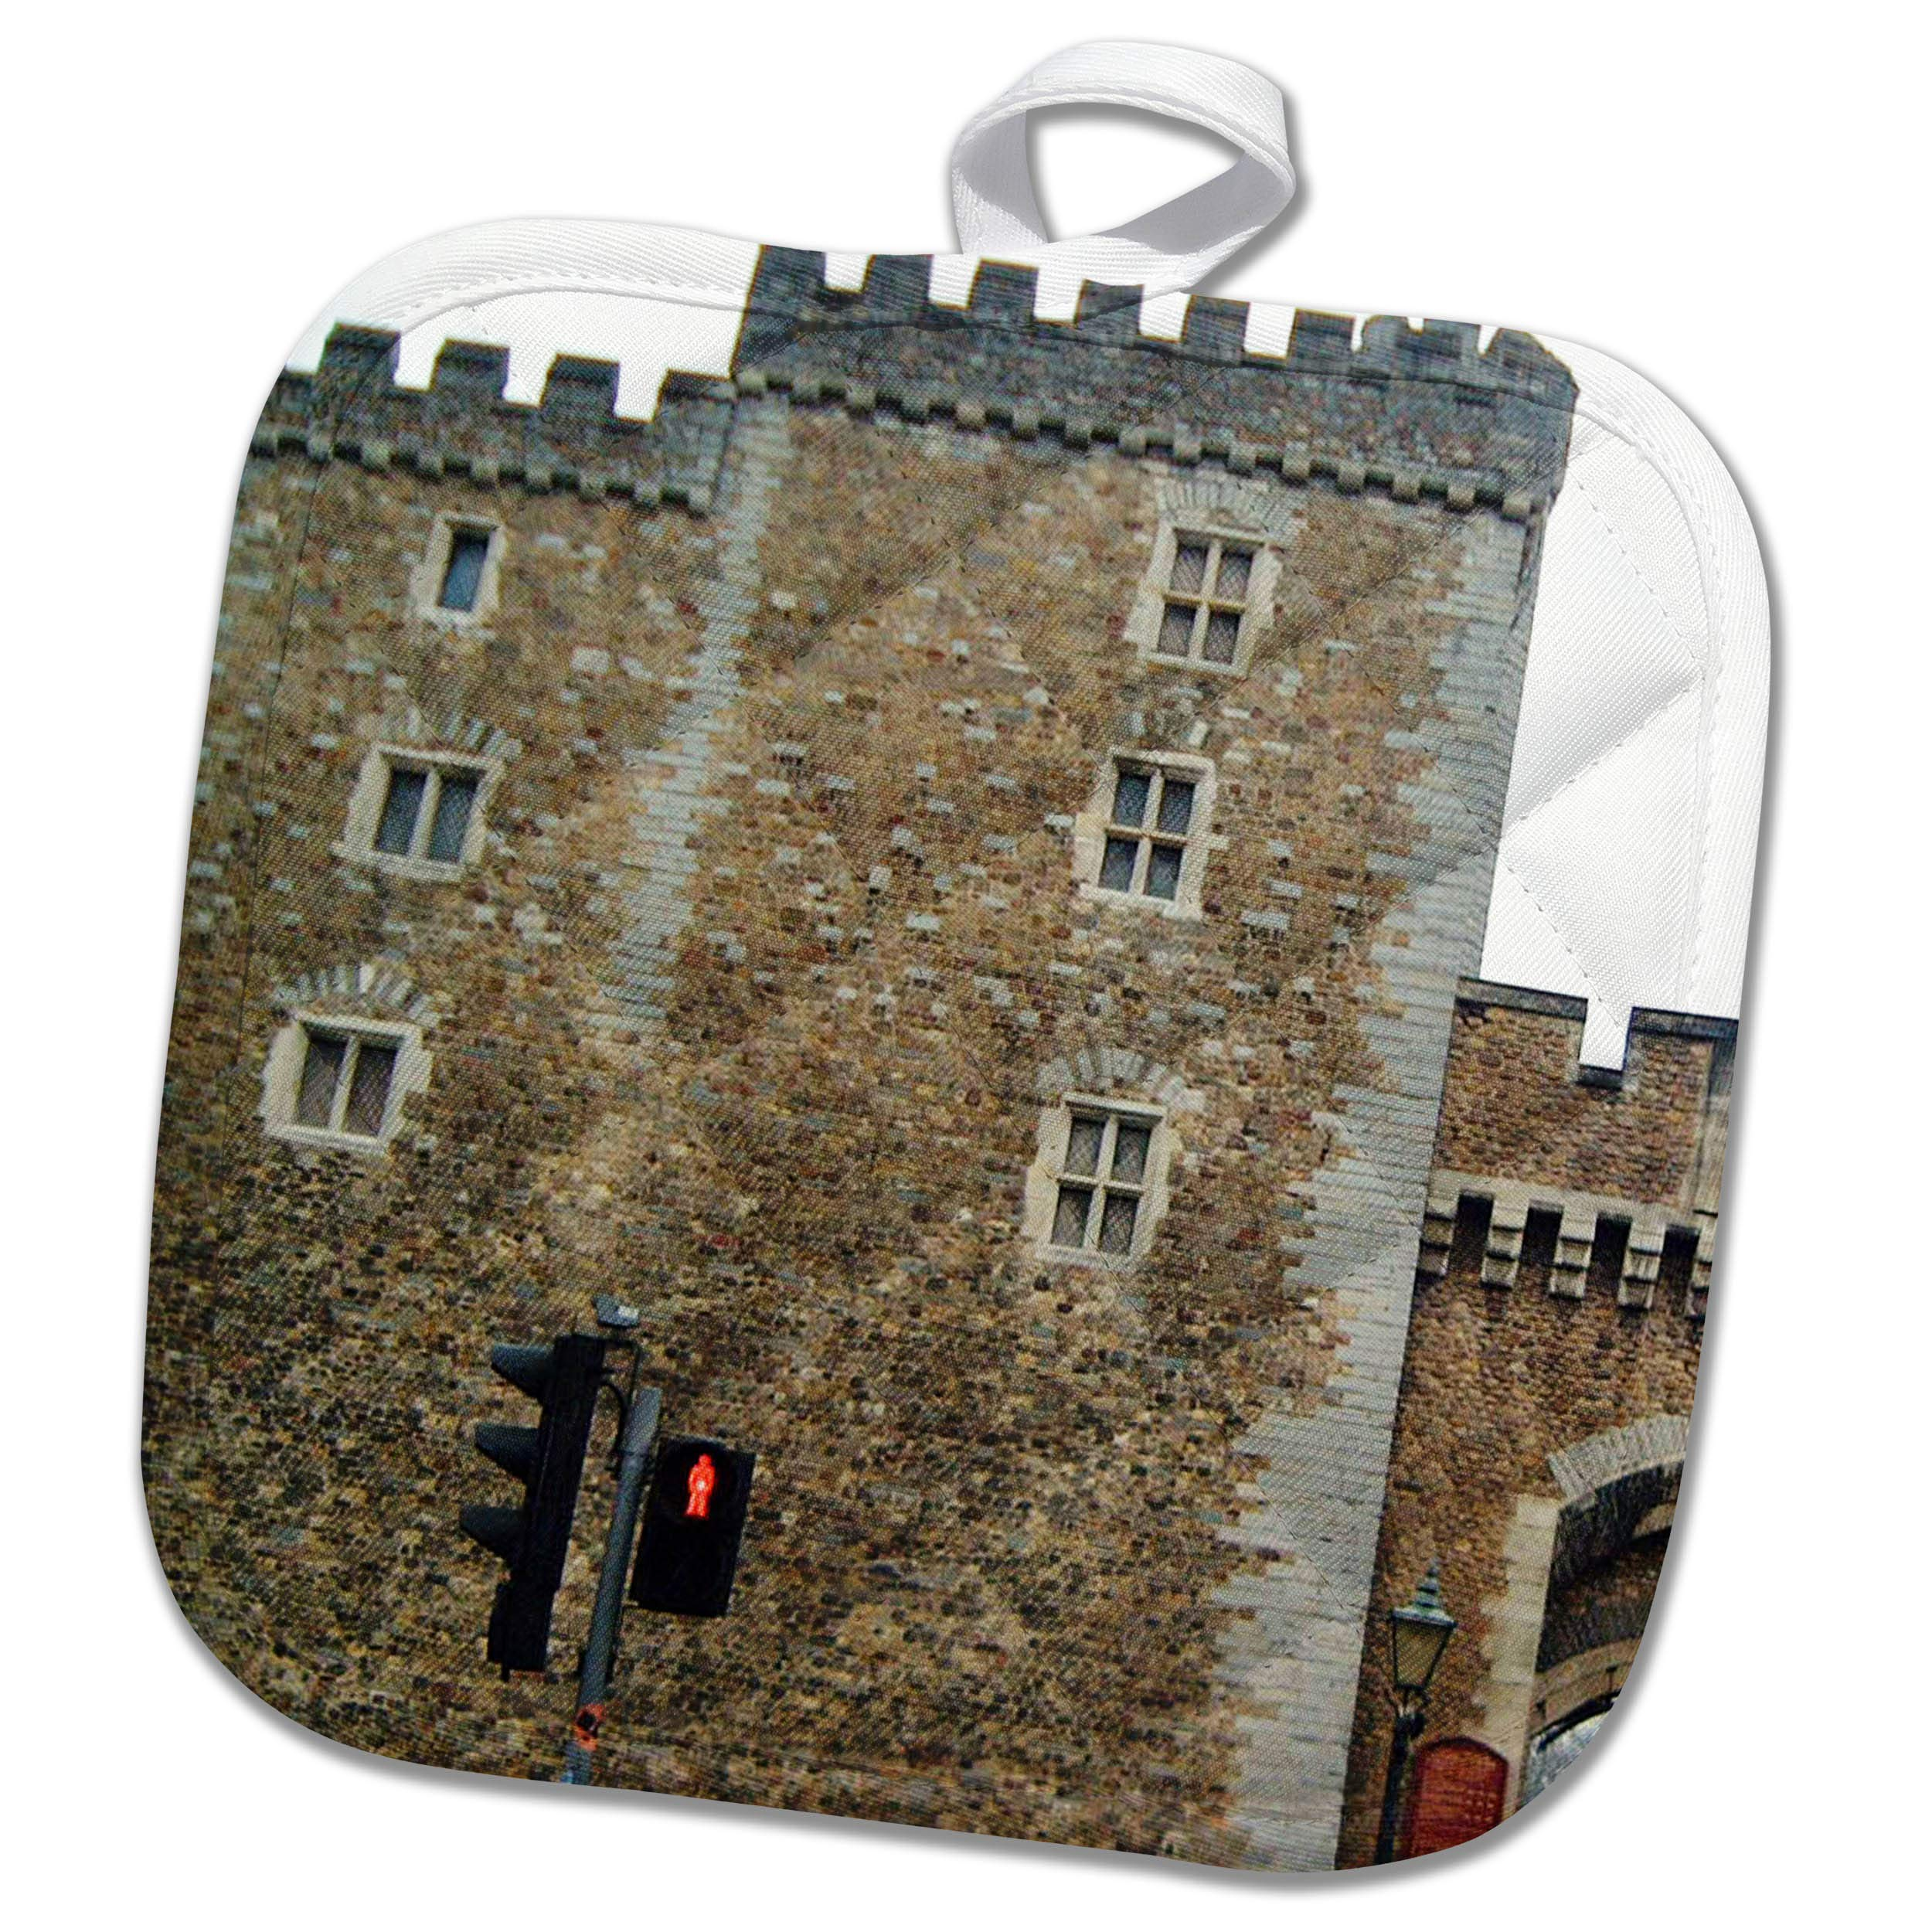 3dRose Jos Fauxtographee- Cardiff Wales Castle Wall - The Outer Walls of The Cardiff Castle in Wales on a Main Street - 8x8 Potholder (PHL_295691_1)